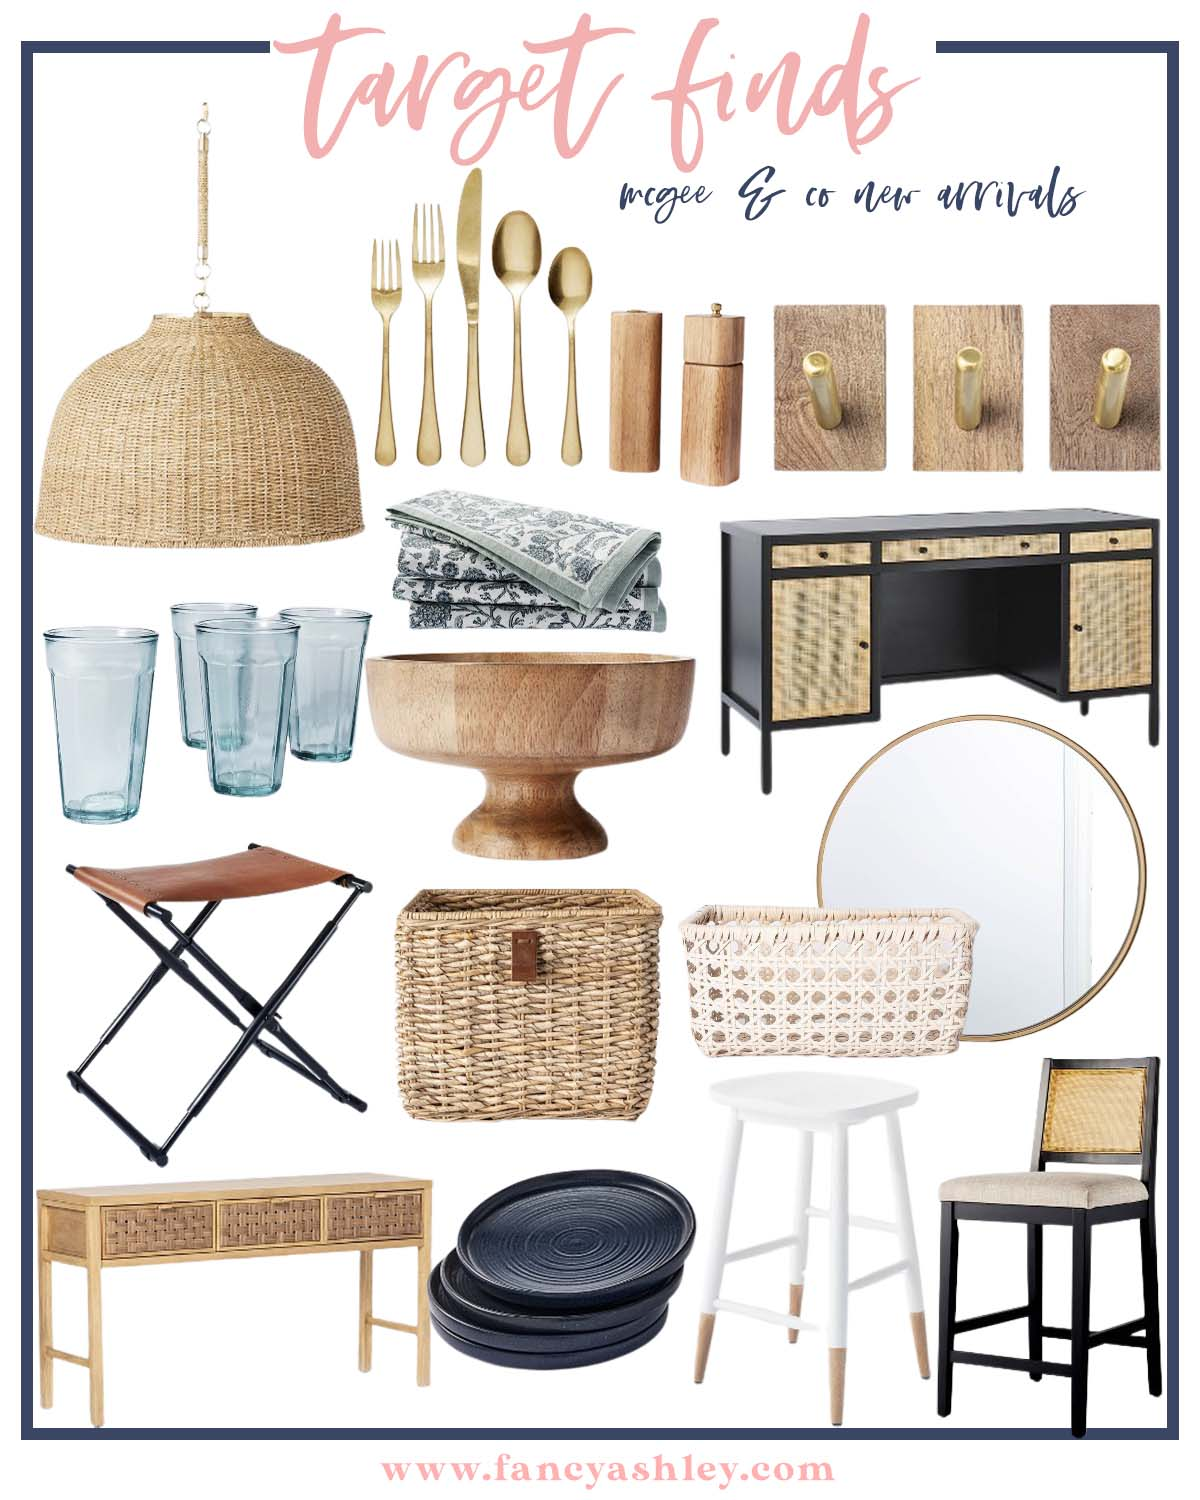 McGee & Co by popular Houston life and style blog, Fancy Ashley: collage image of McGee & Co blue glasses, McGee & Co gold flatware, McGee & Co gold and wood wall hooks, McGee and Co round mirror, McGee & Co, floral print cloth napkins, McGee & Co blue stool, McGee & Co wooden salt and pepper grinders, McGee & Co white wicker basket, McGee & Co wooden bowl, McGee & Co black plates, McGee & Co black stool, McGee & Co console table, McGee & Co wicker pendant light, and McGee & Co leather seat.